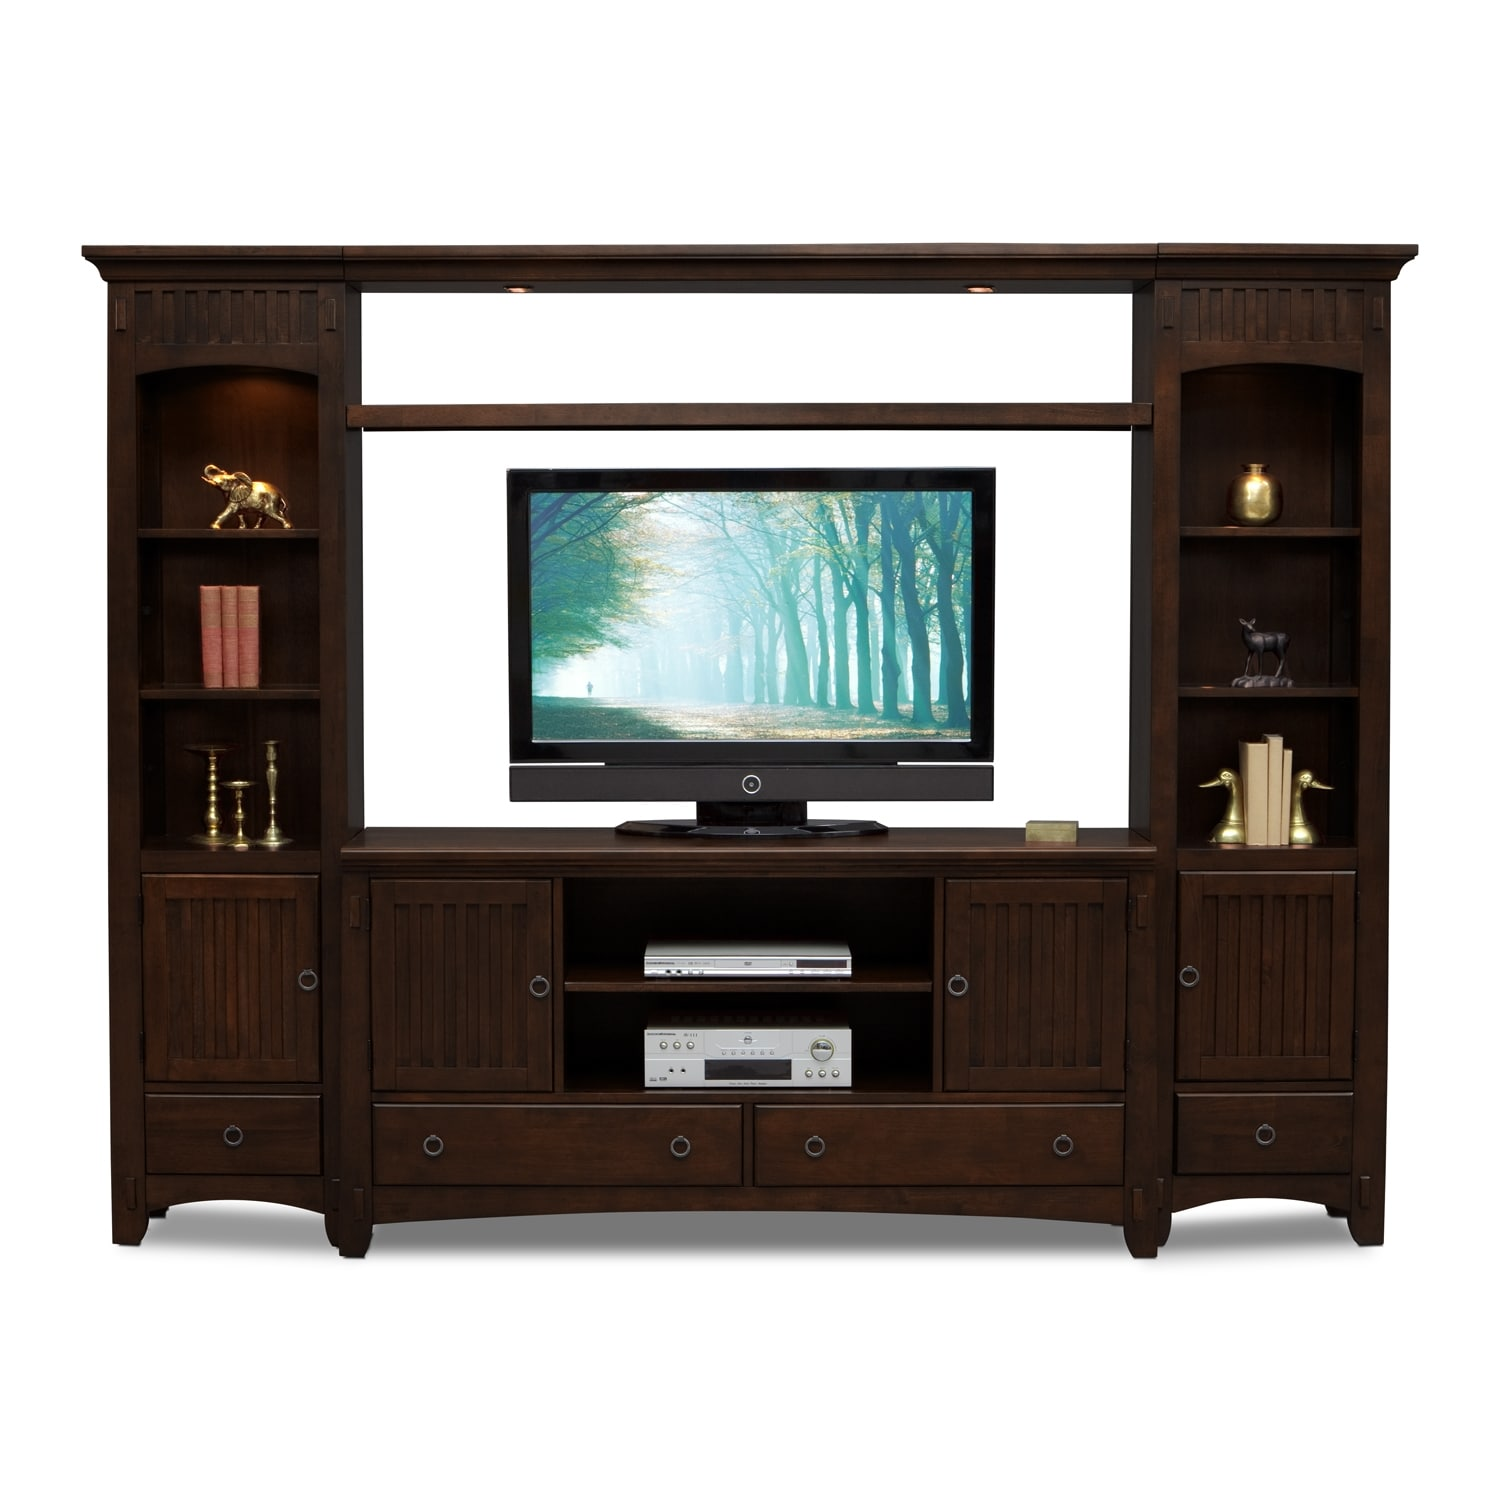 Beau Arts U0026 Crafts 4 Piece Entertainment Wall Unit   Chocolate